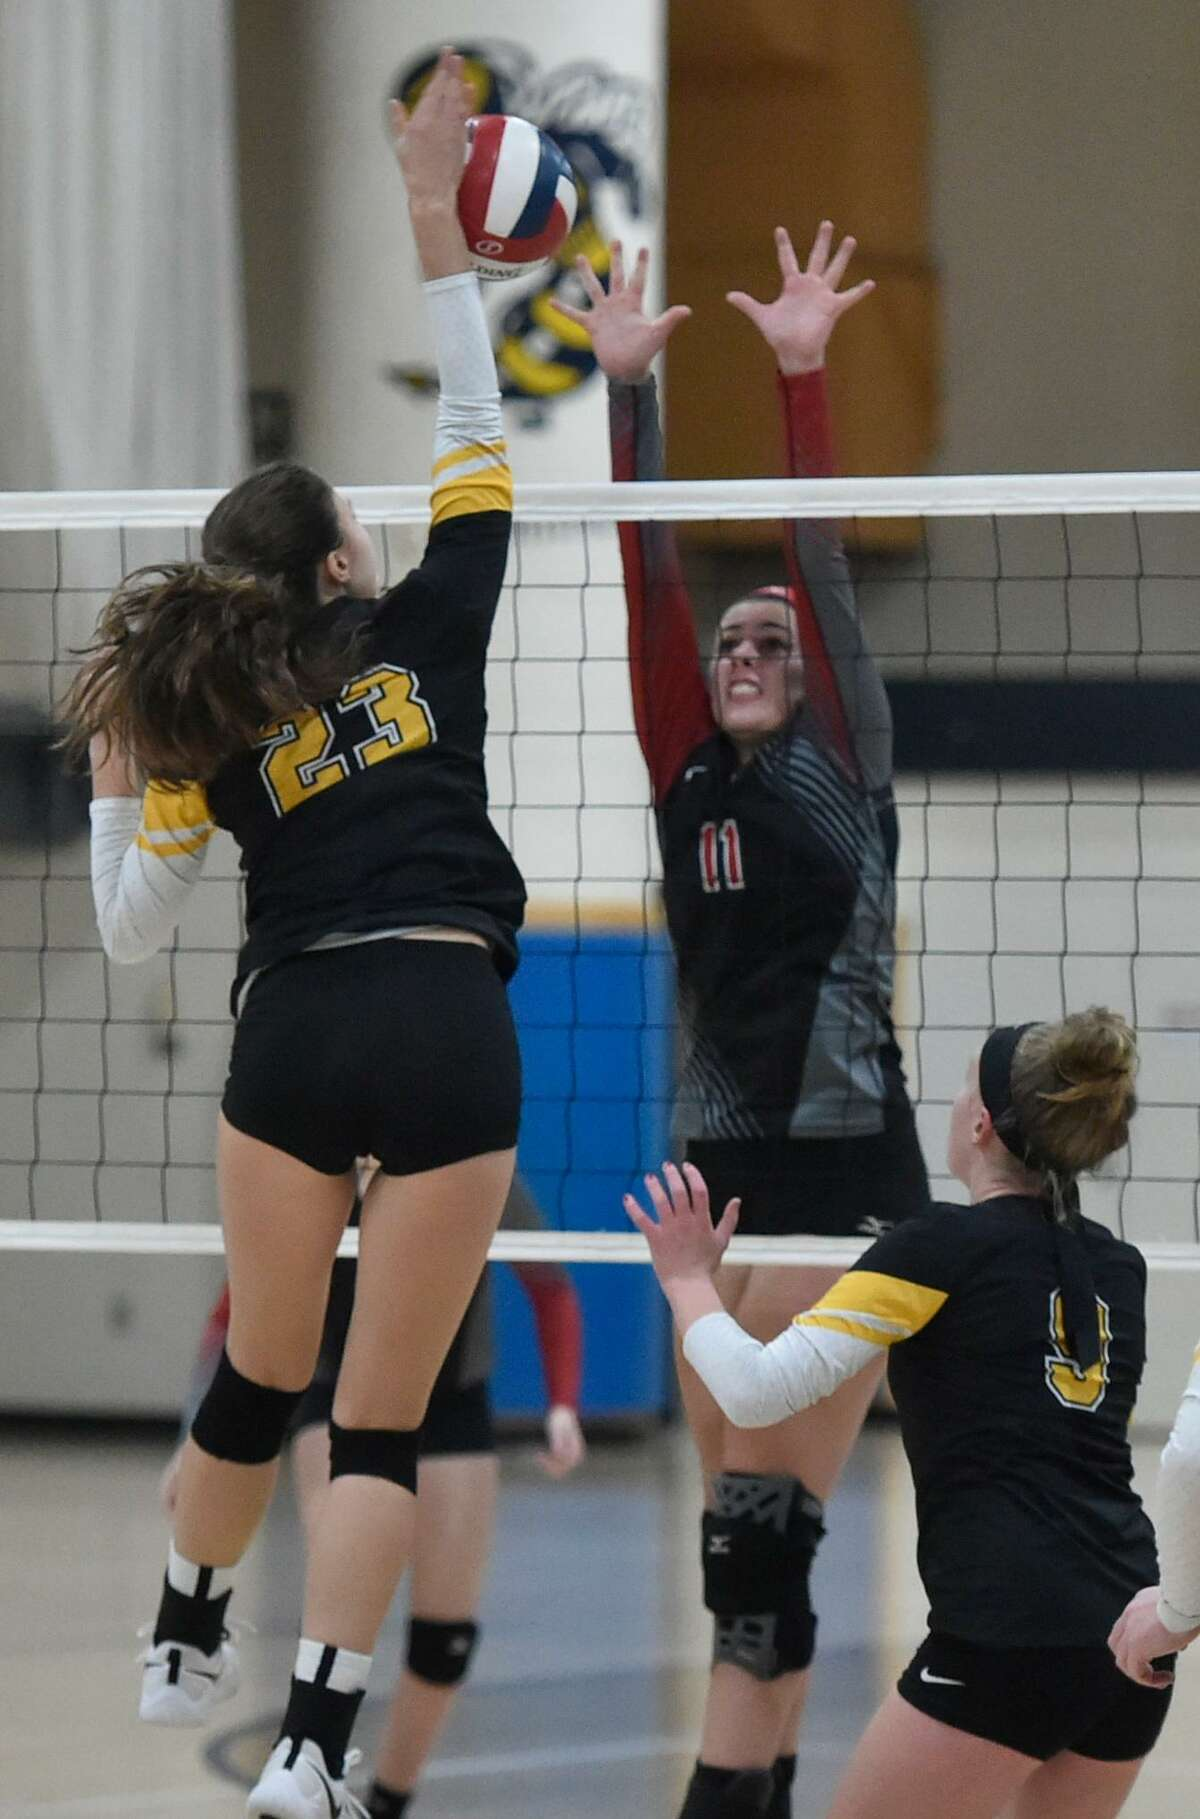 """East Haven, Connecticut - Saturday, November 3, 2018: #1 Cheshire H.S. vs. #2 Amity H.S. during the first game of the SCC Girls Volleyball """"Championship Final Saturday at East Haven H.S."""